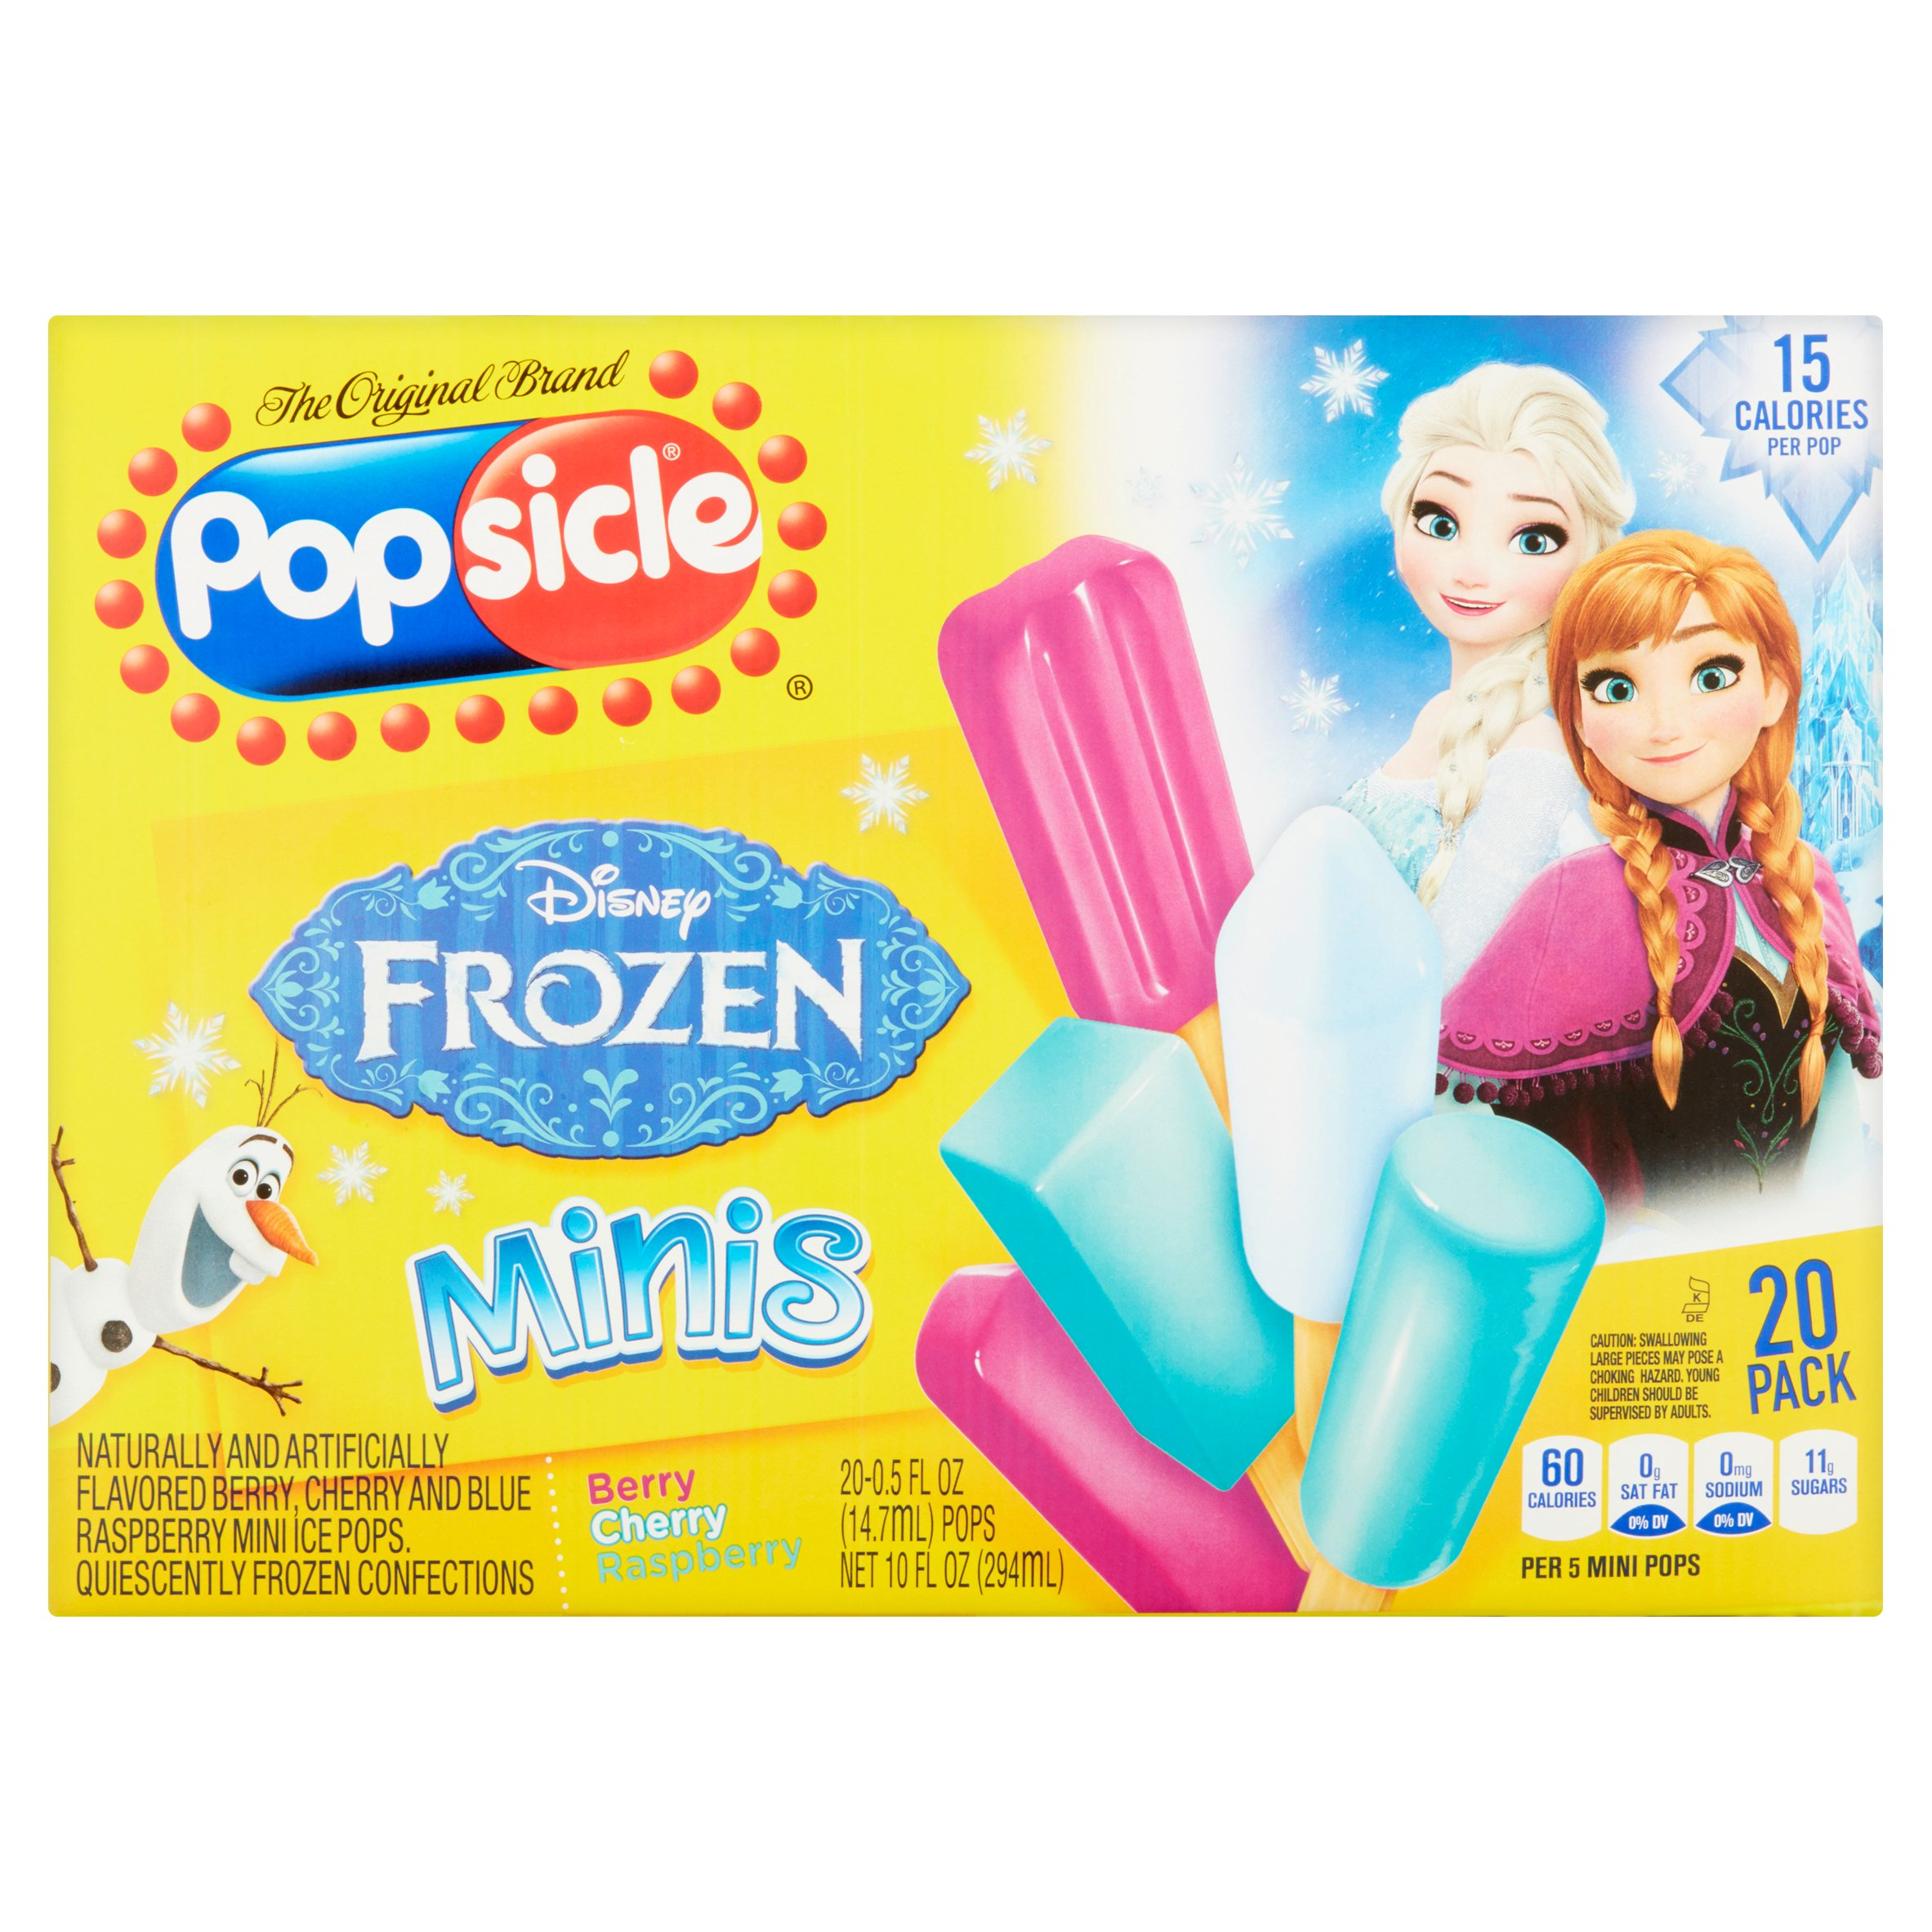 Popsicle Frozen Minis Assorted Flavors .5 oz Ice Pops, 20 ct